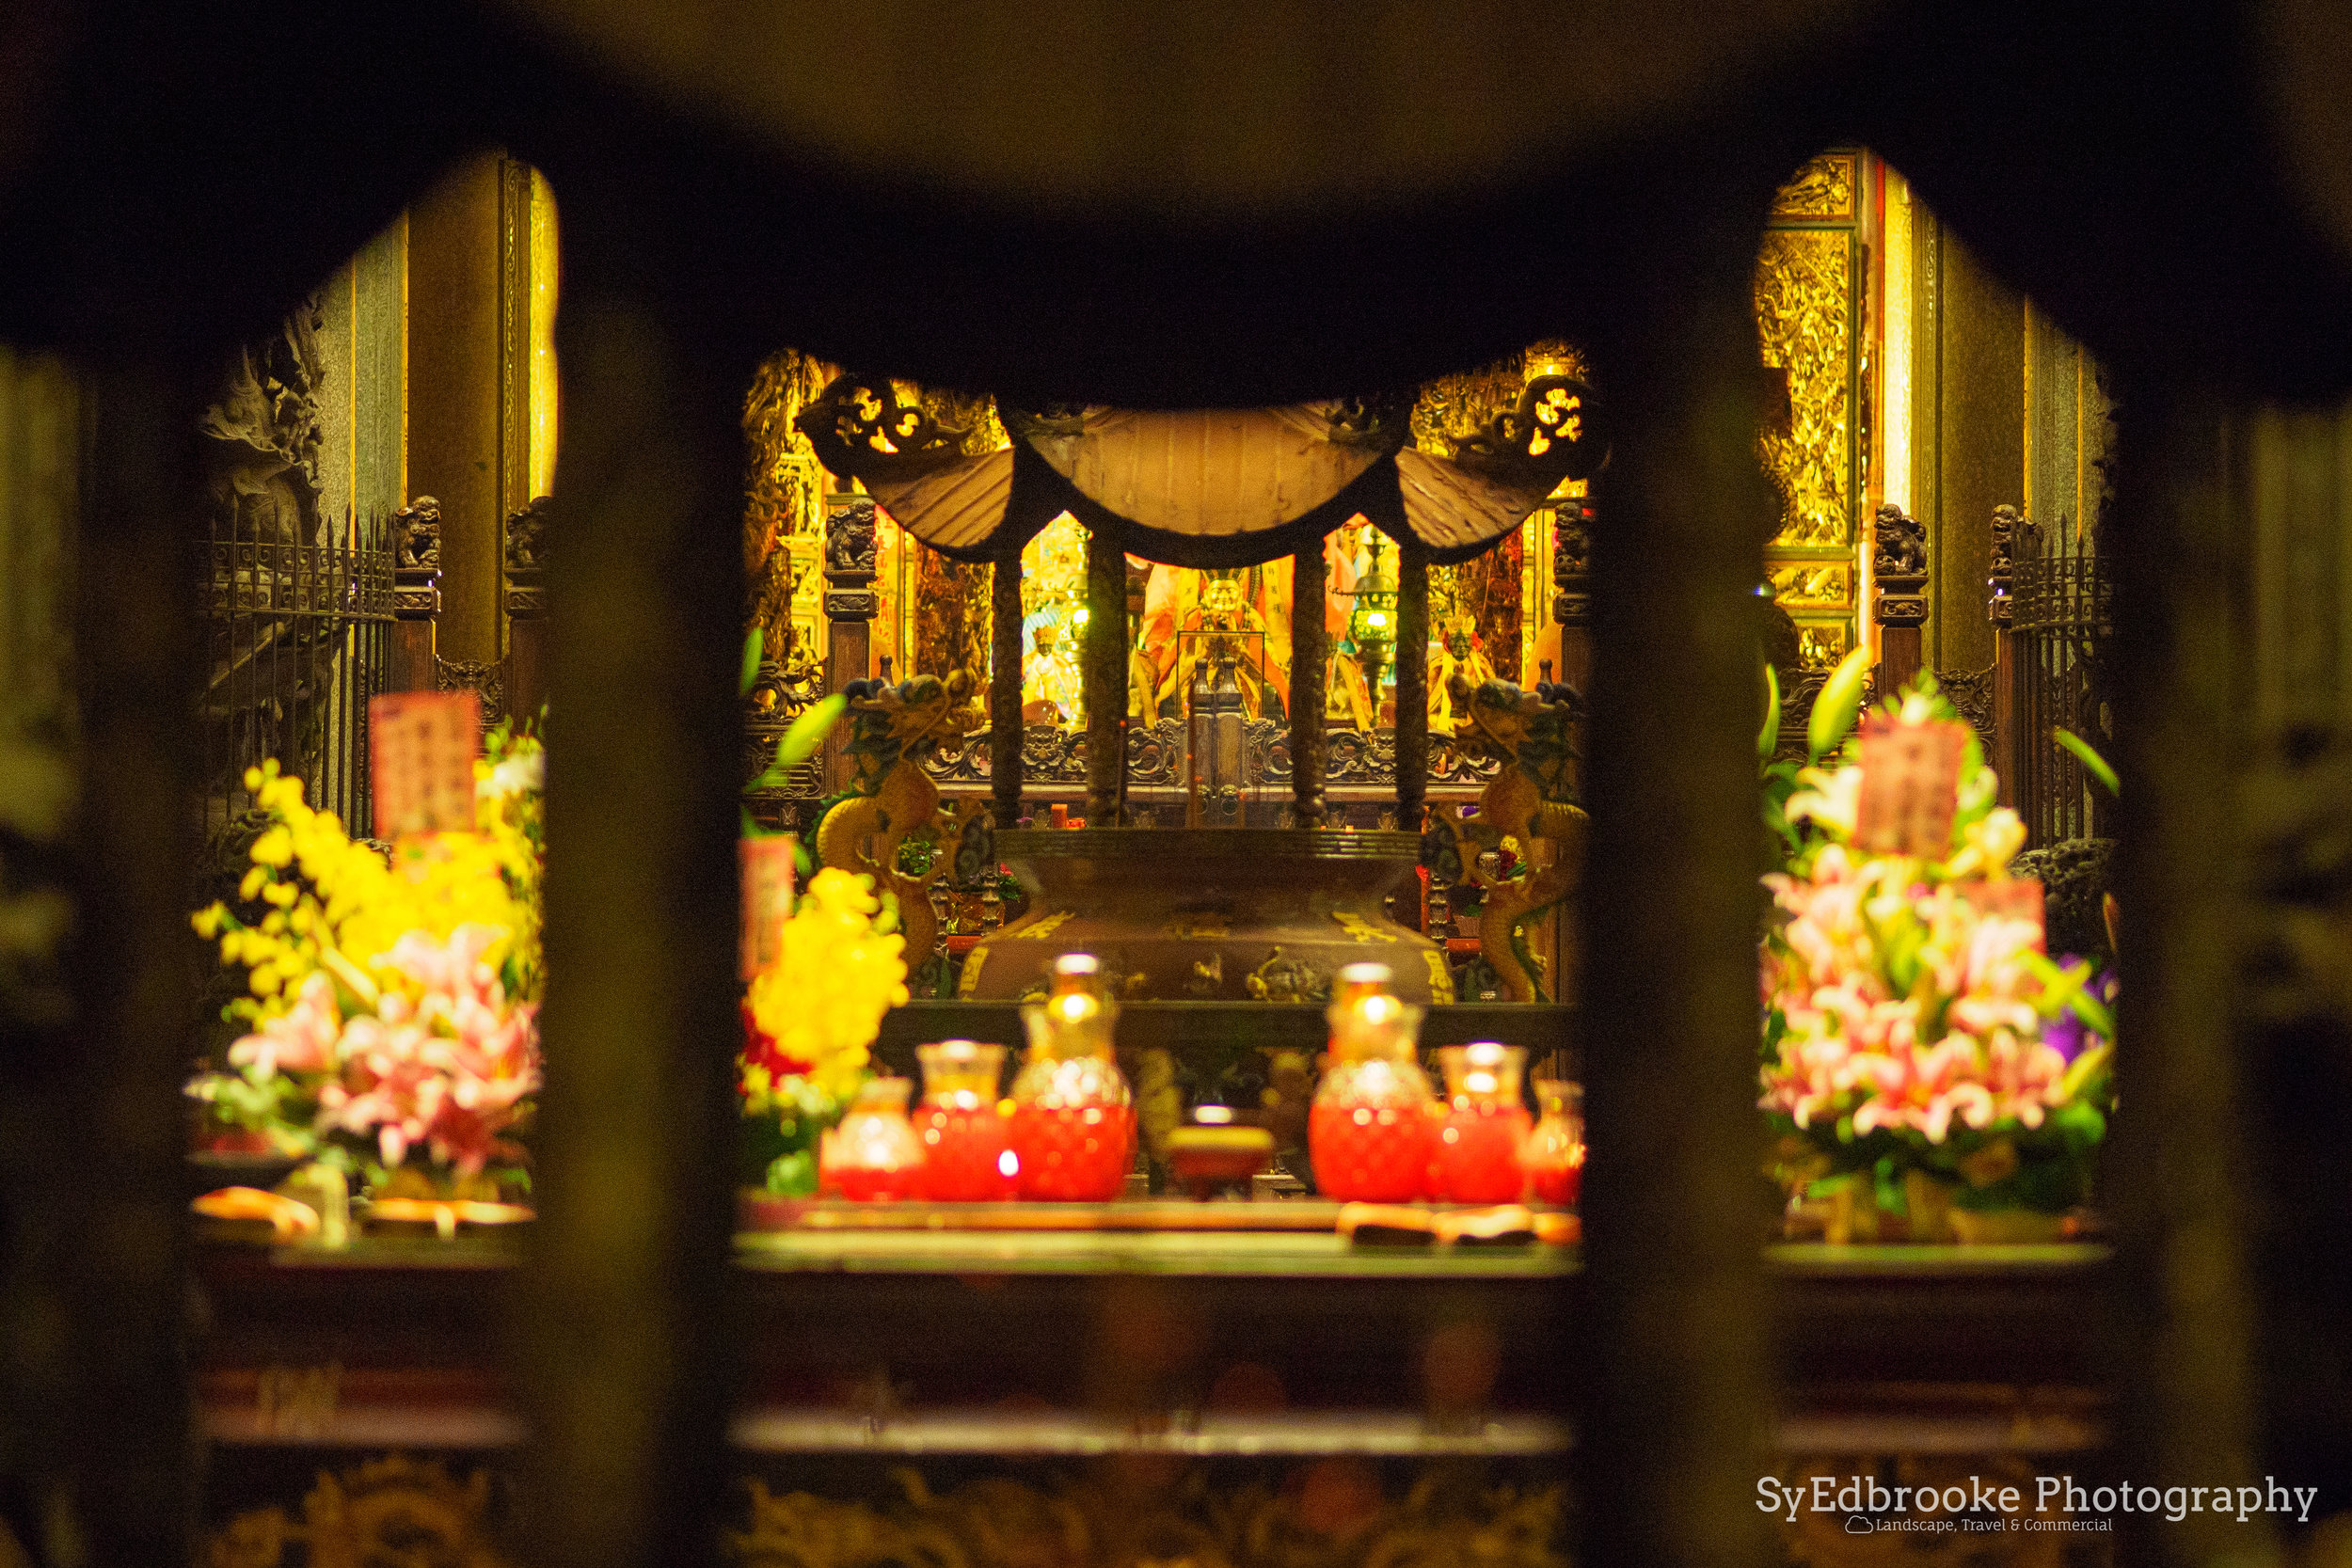 Outside looking in. f1.8, ISO 1600, 1/50, 75mm